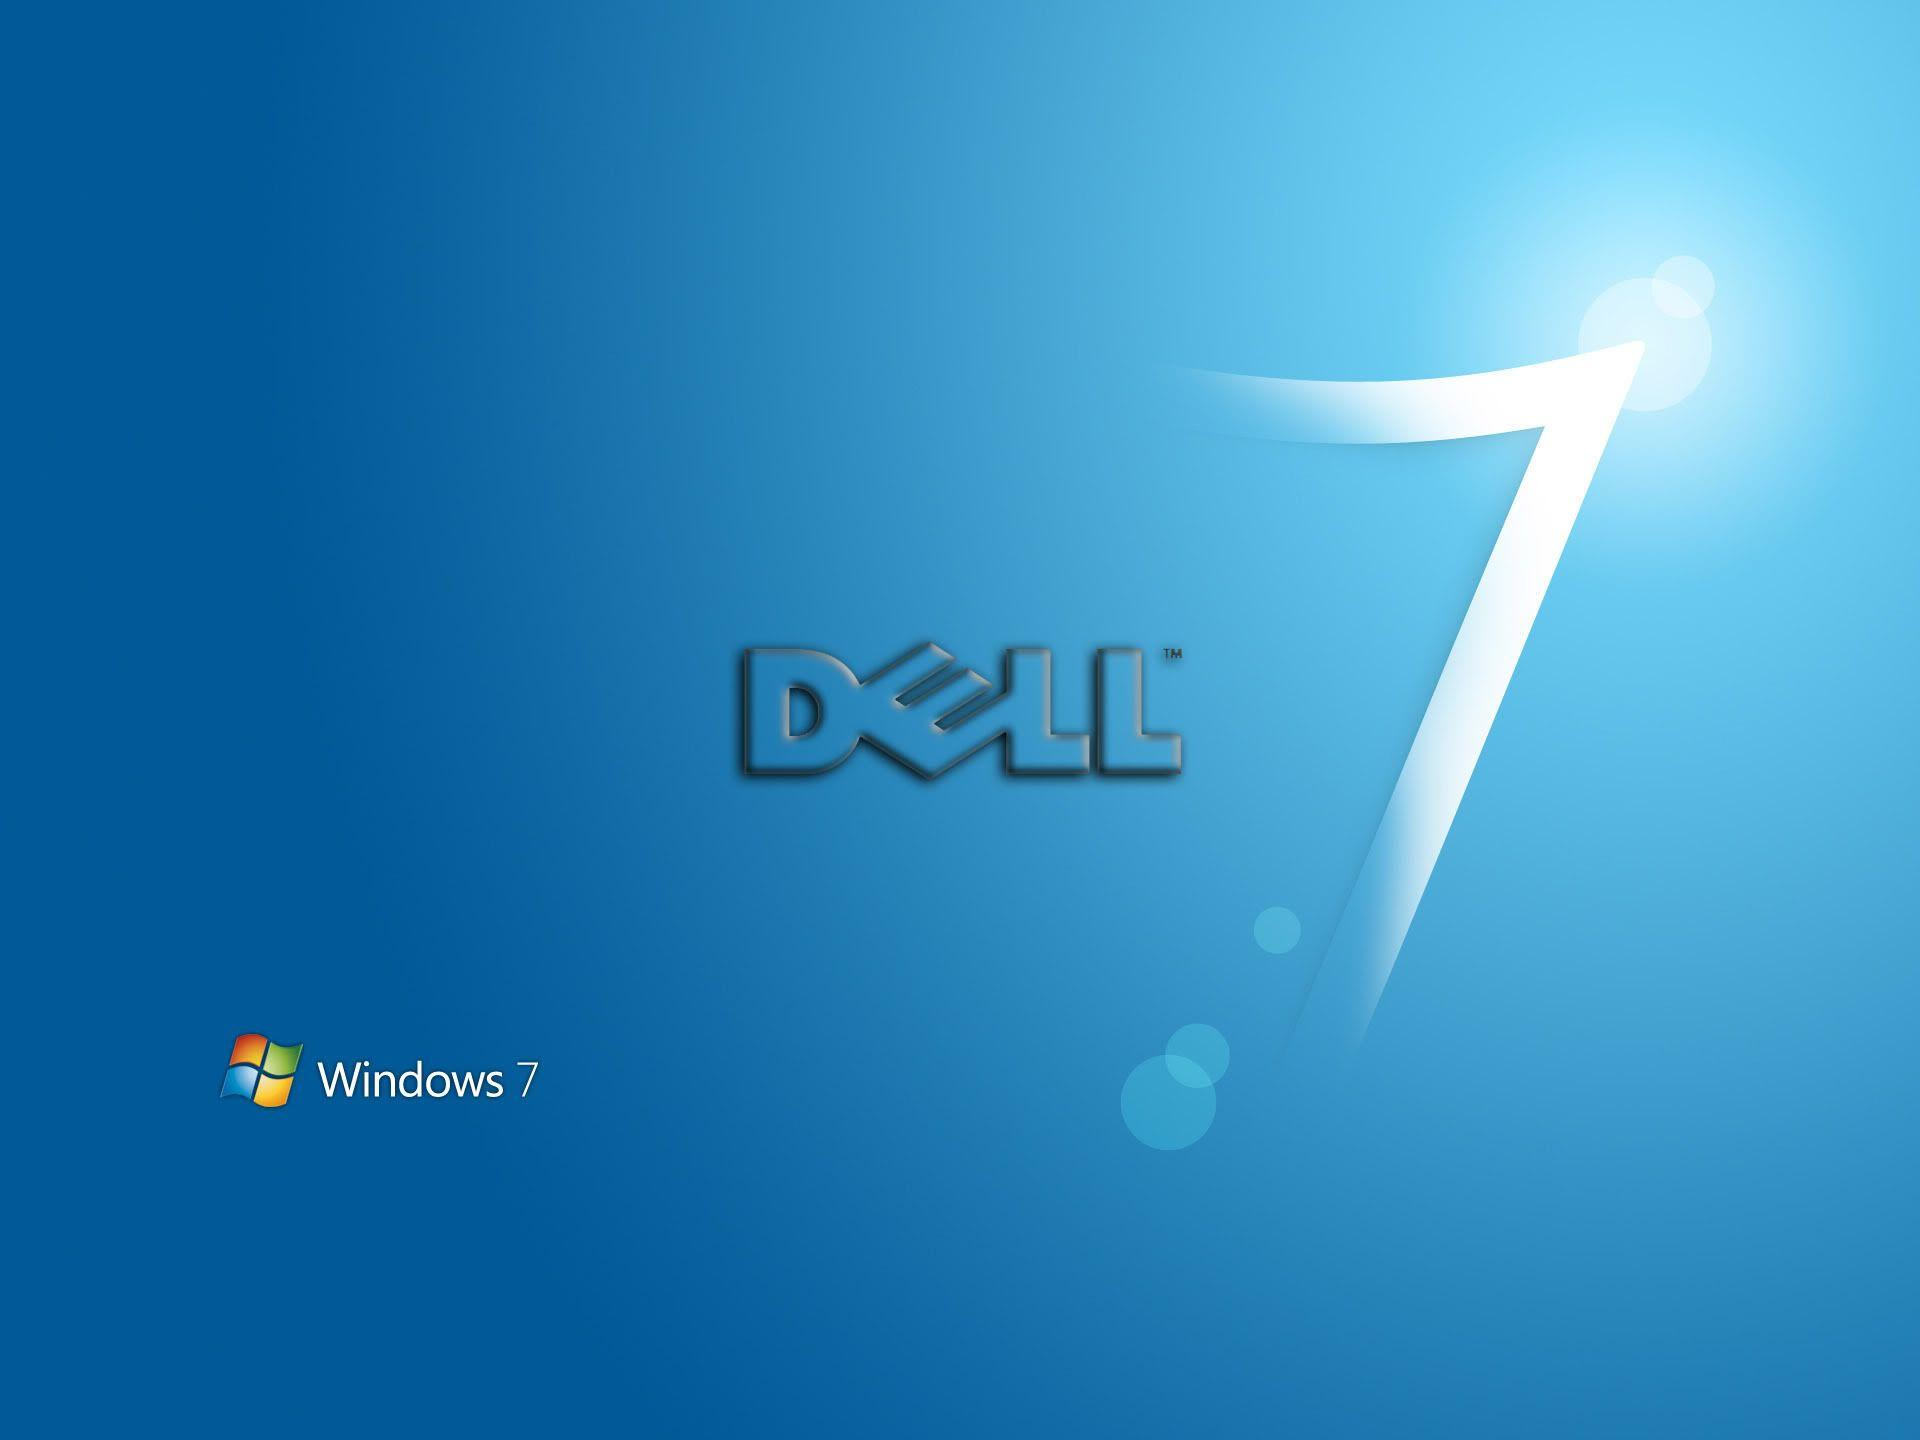 desktop wallpaper dell 38 - photo #23